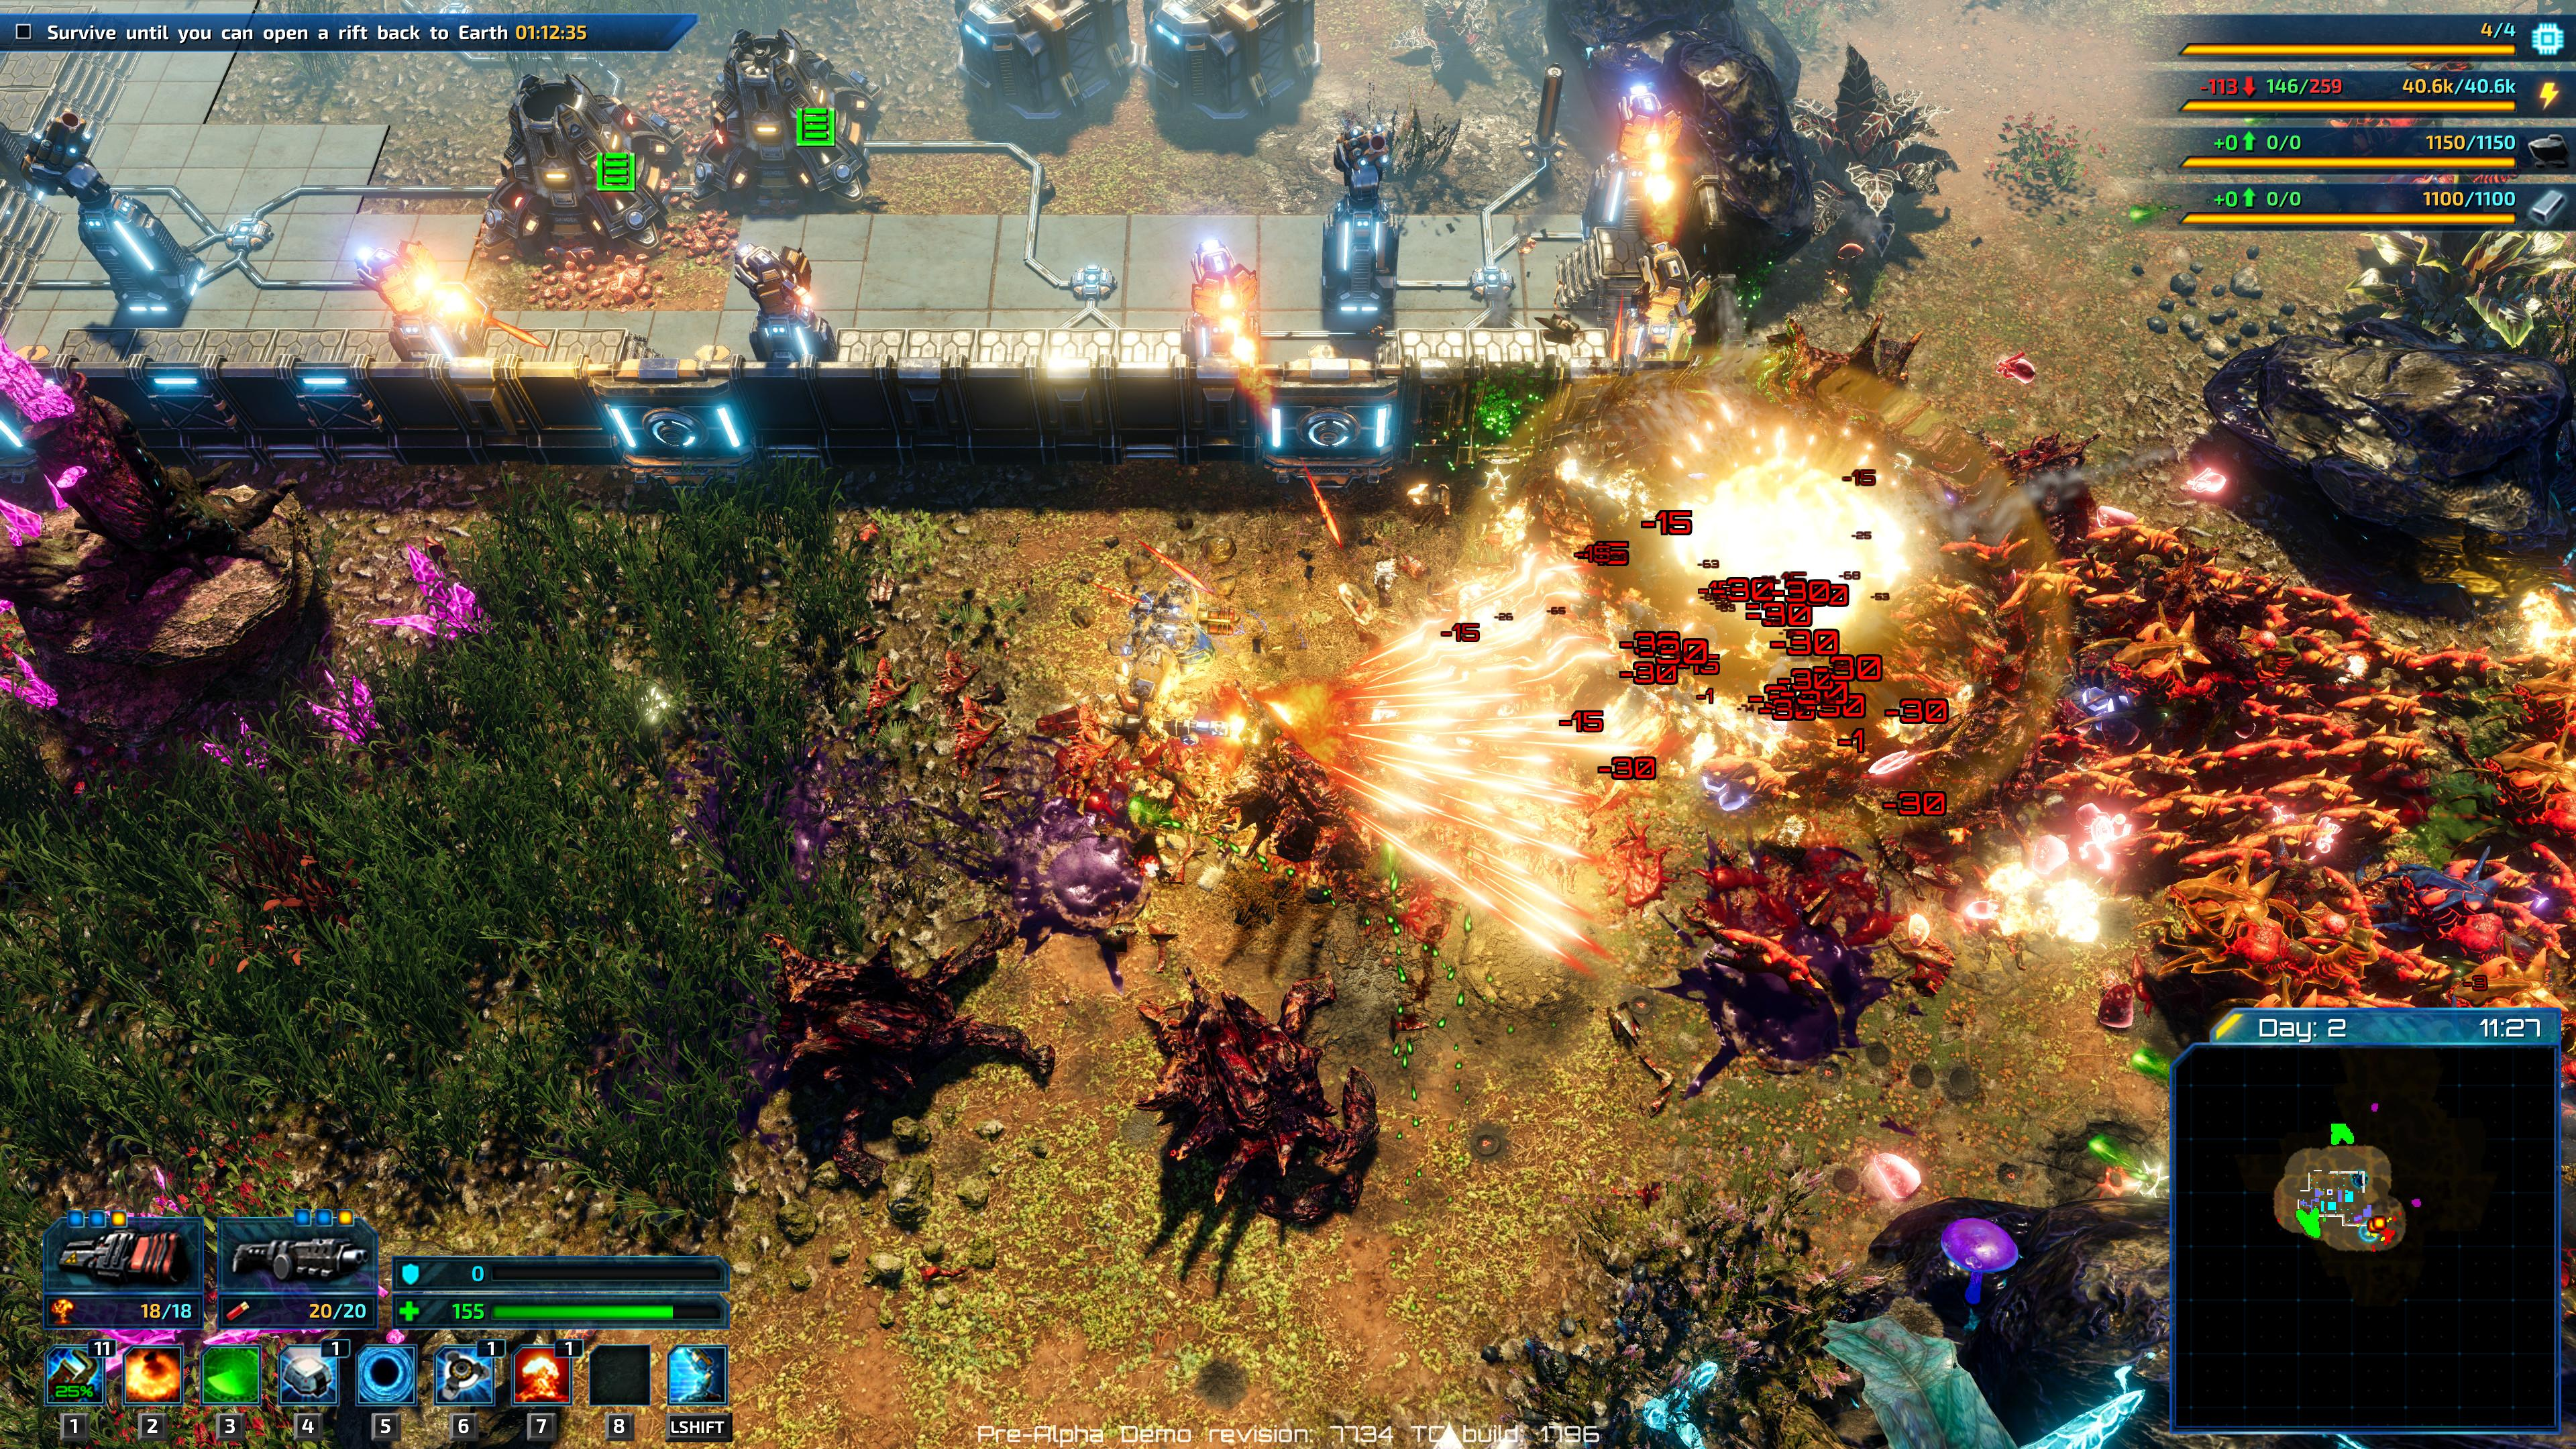 The Riftbreaker will have players defending against large swarms of hostile alien creatures